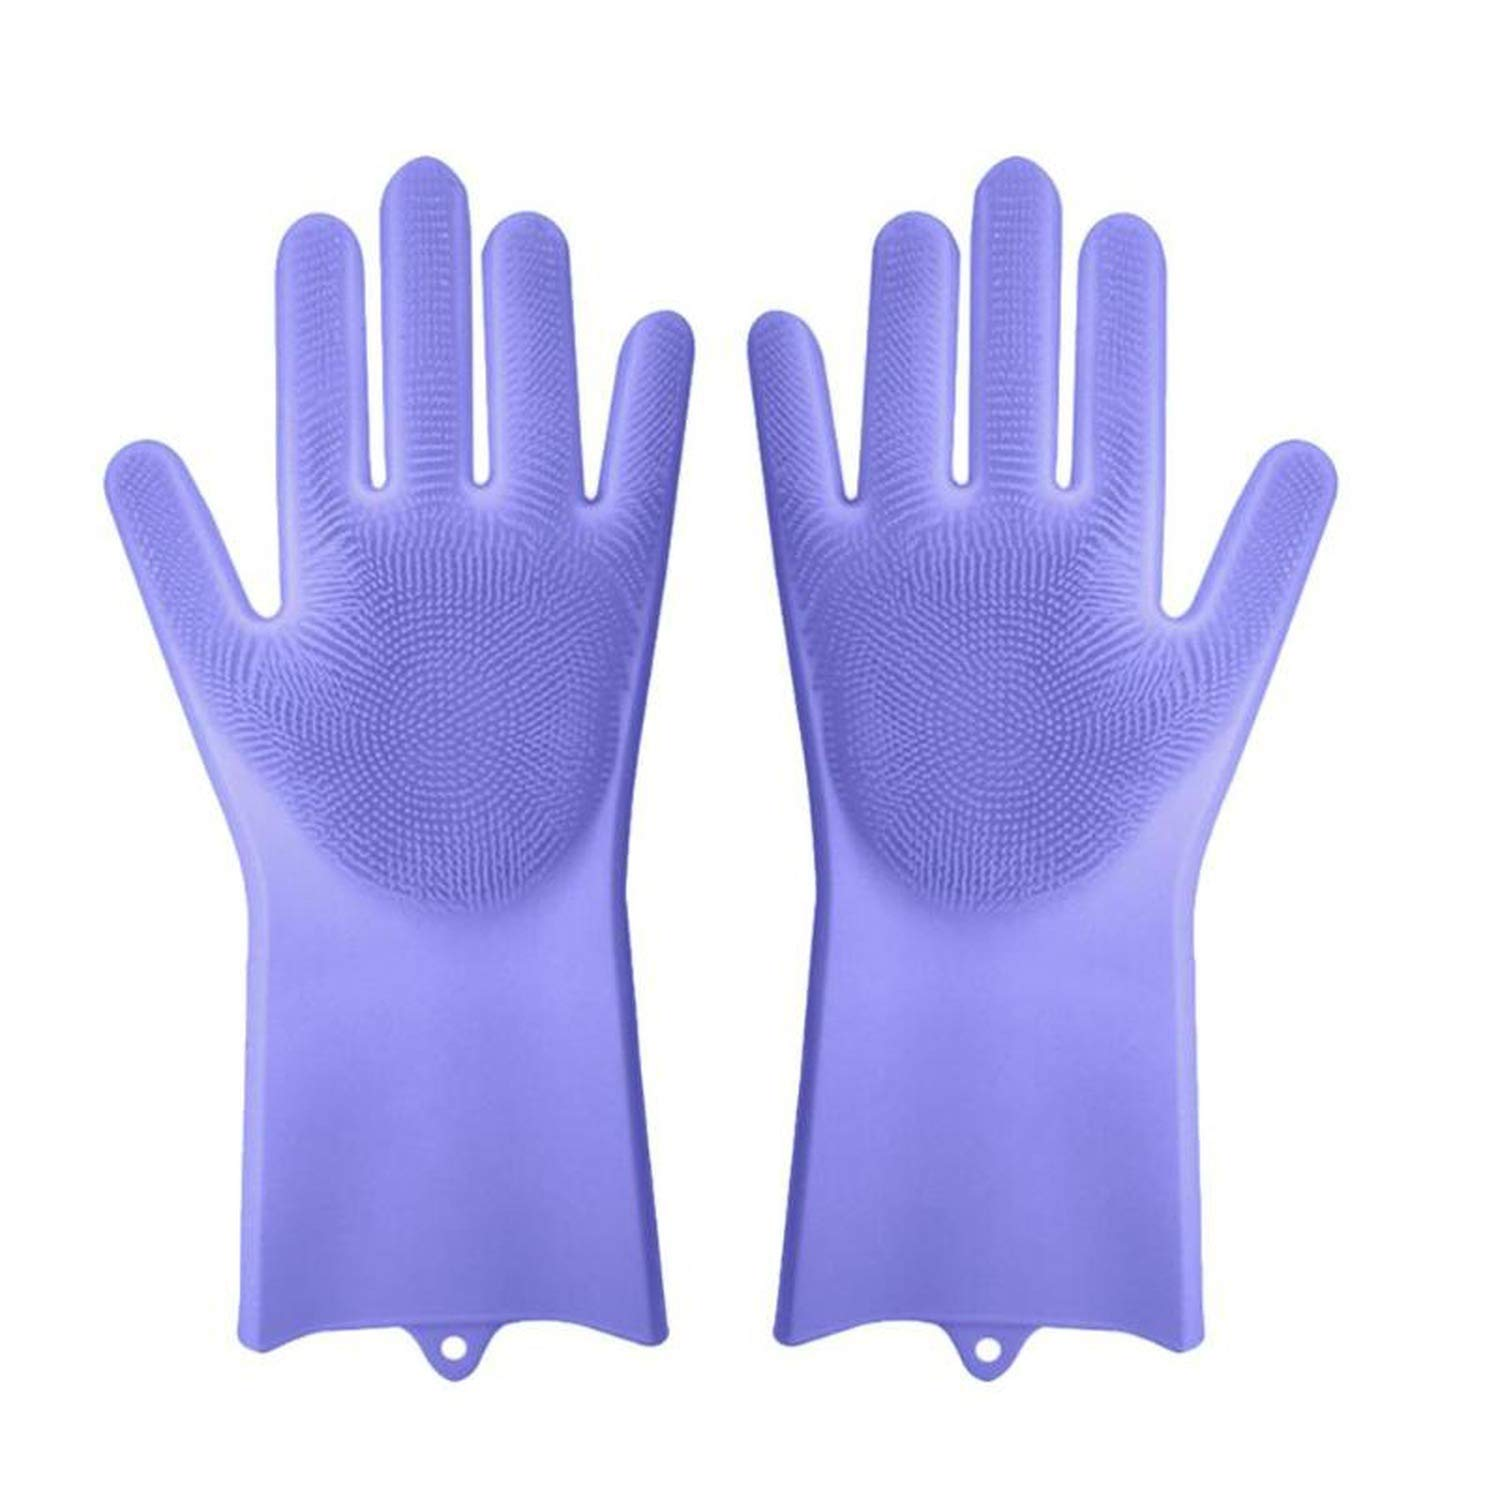 1 Pair Magic Silicone Scrubber Rubber Cleaning Gloves Dusting Dish Washing Pet Care Grooming Hair Car Insulated Kitchen Helper,Purple